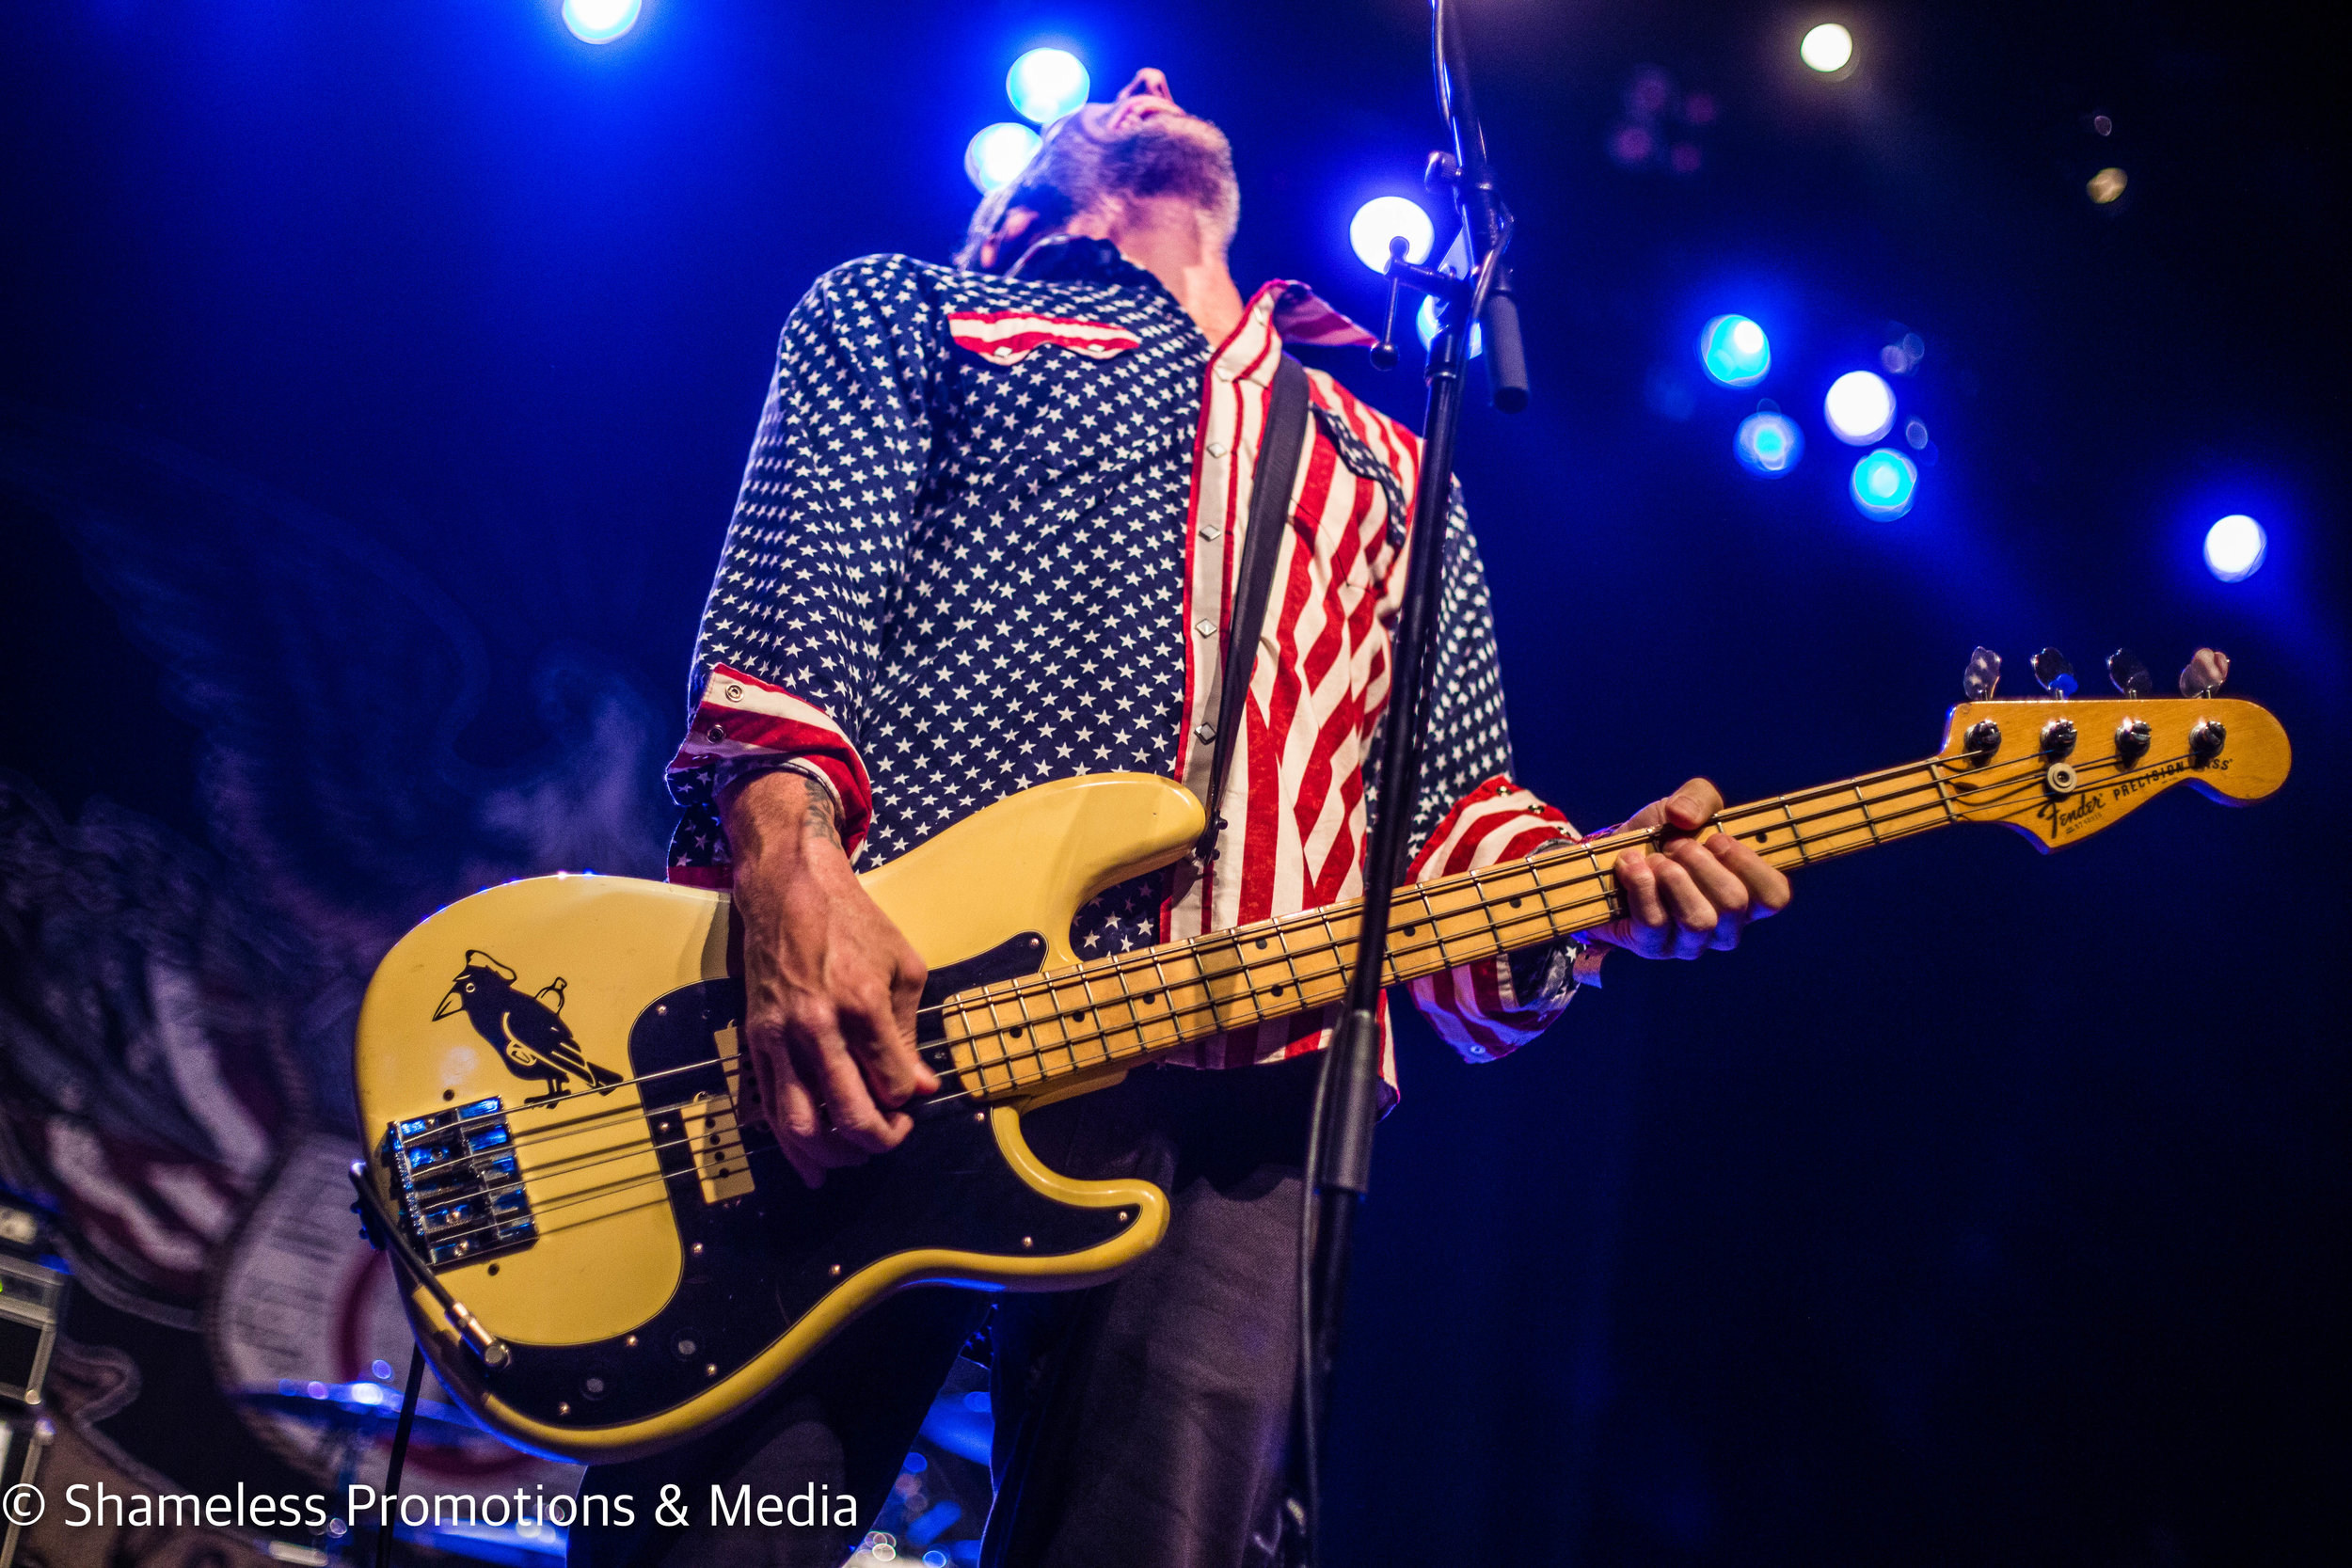 Bad Religion & Against Me! @ The Warfield: October 2016